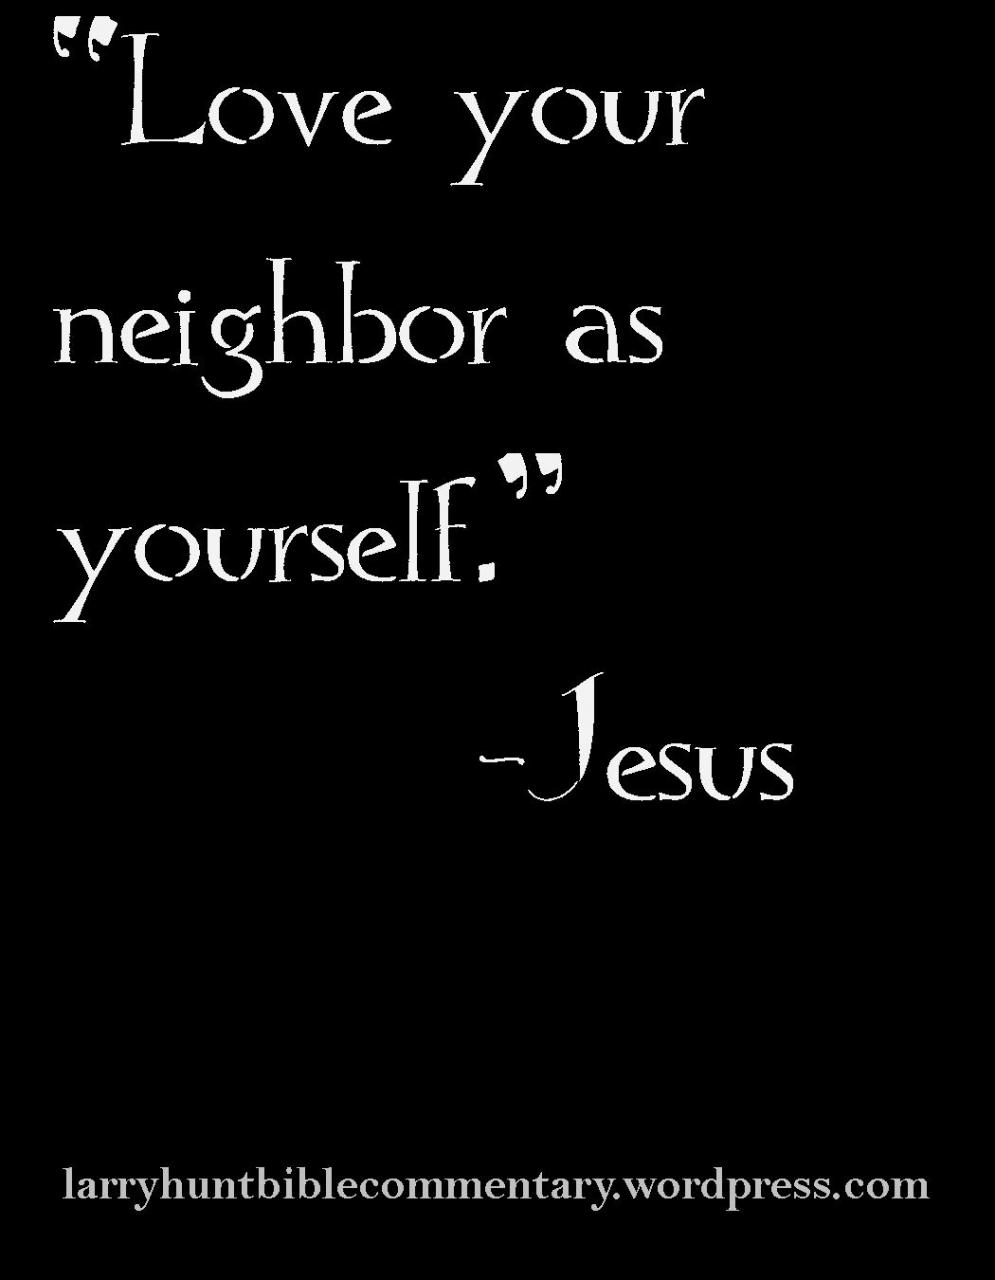 Favorite Bible Verses Larryhuntbiblecommentary WordPress Com We Are Commanded To Love Our Neighbors